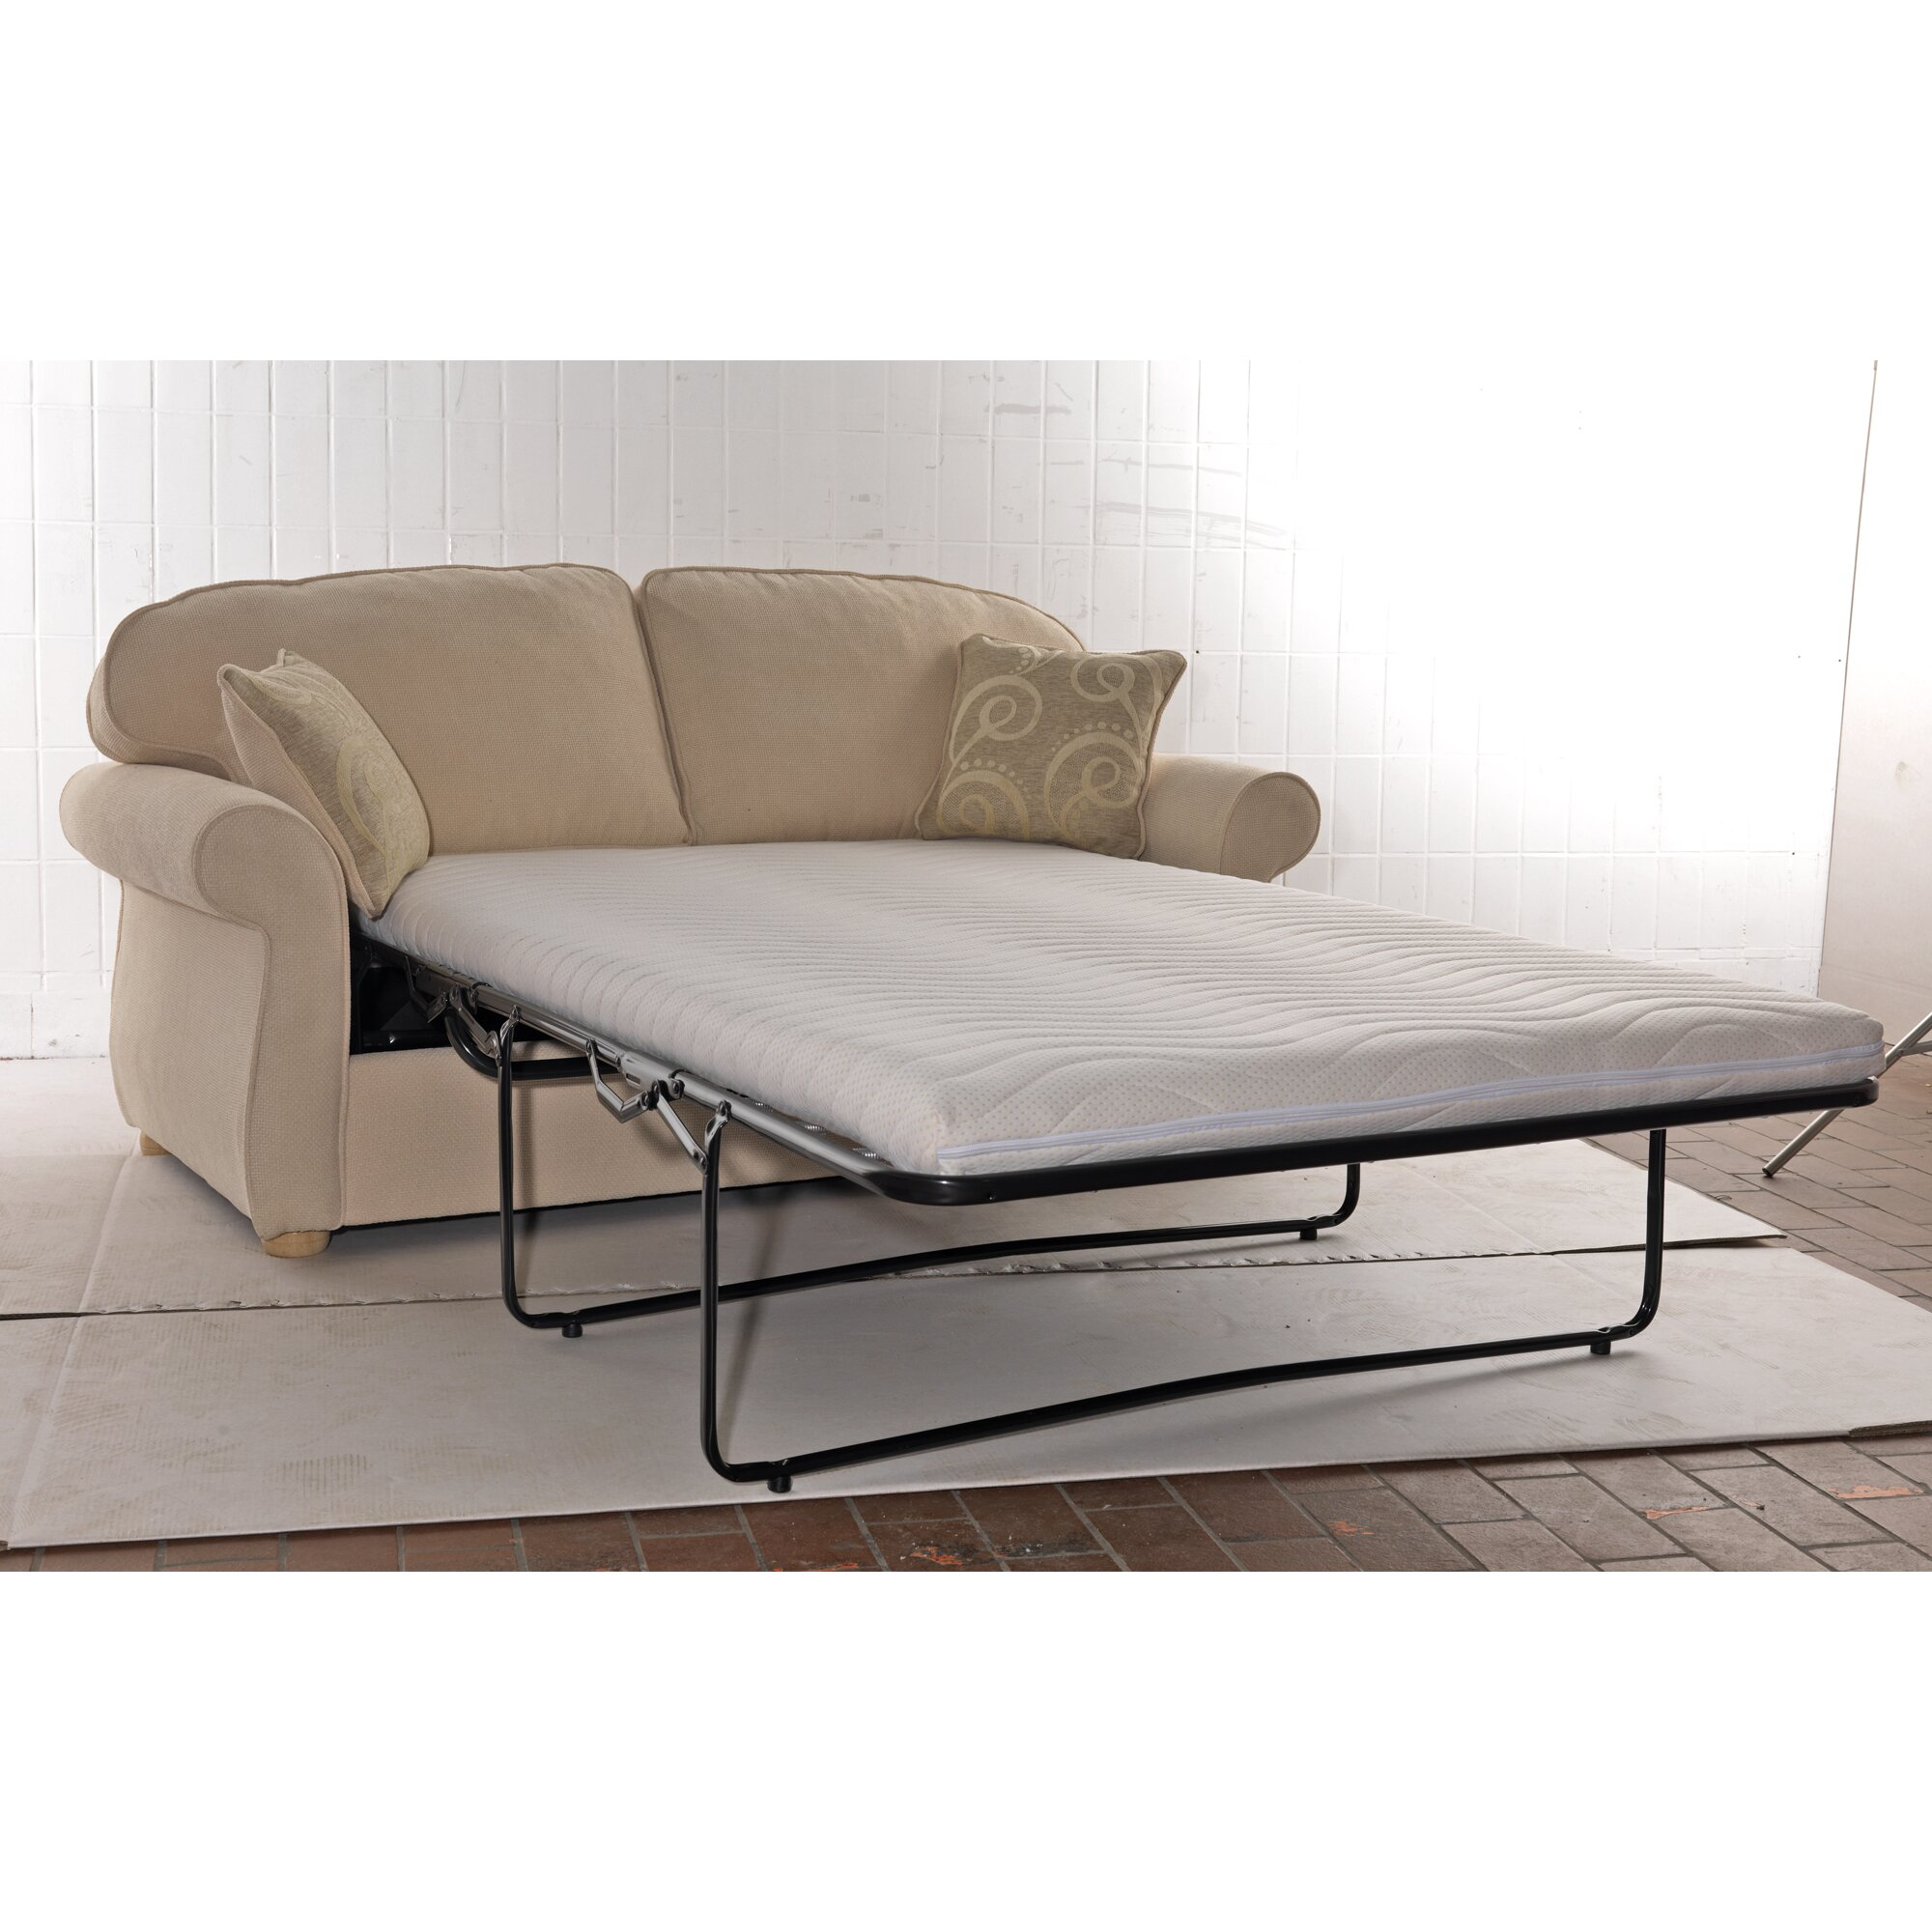 Fold out sofa smileydotus for Sectional sofa with fold out bed